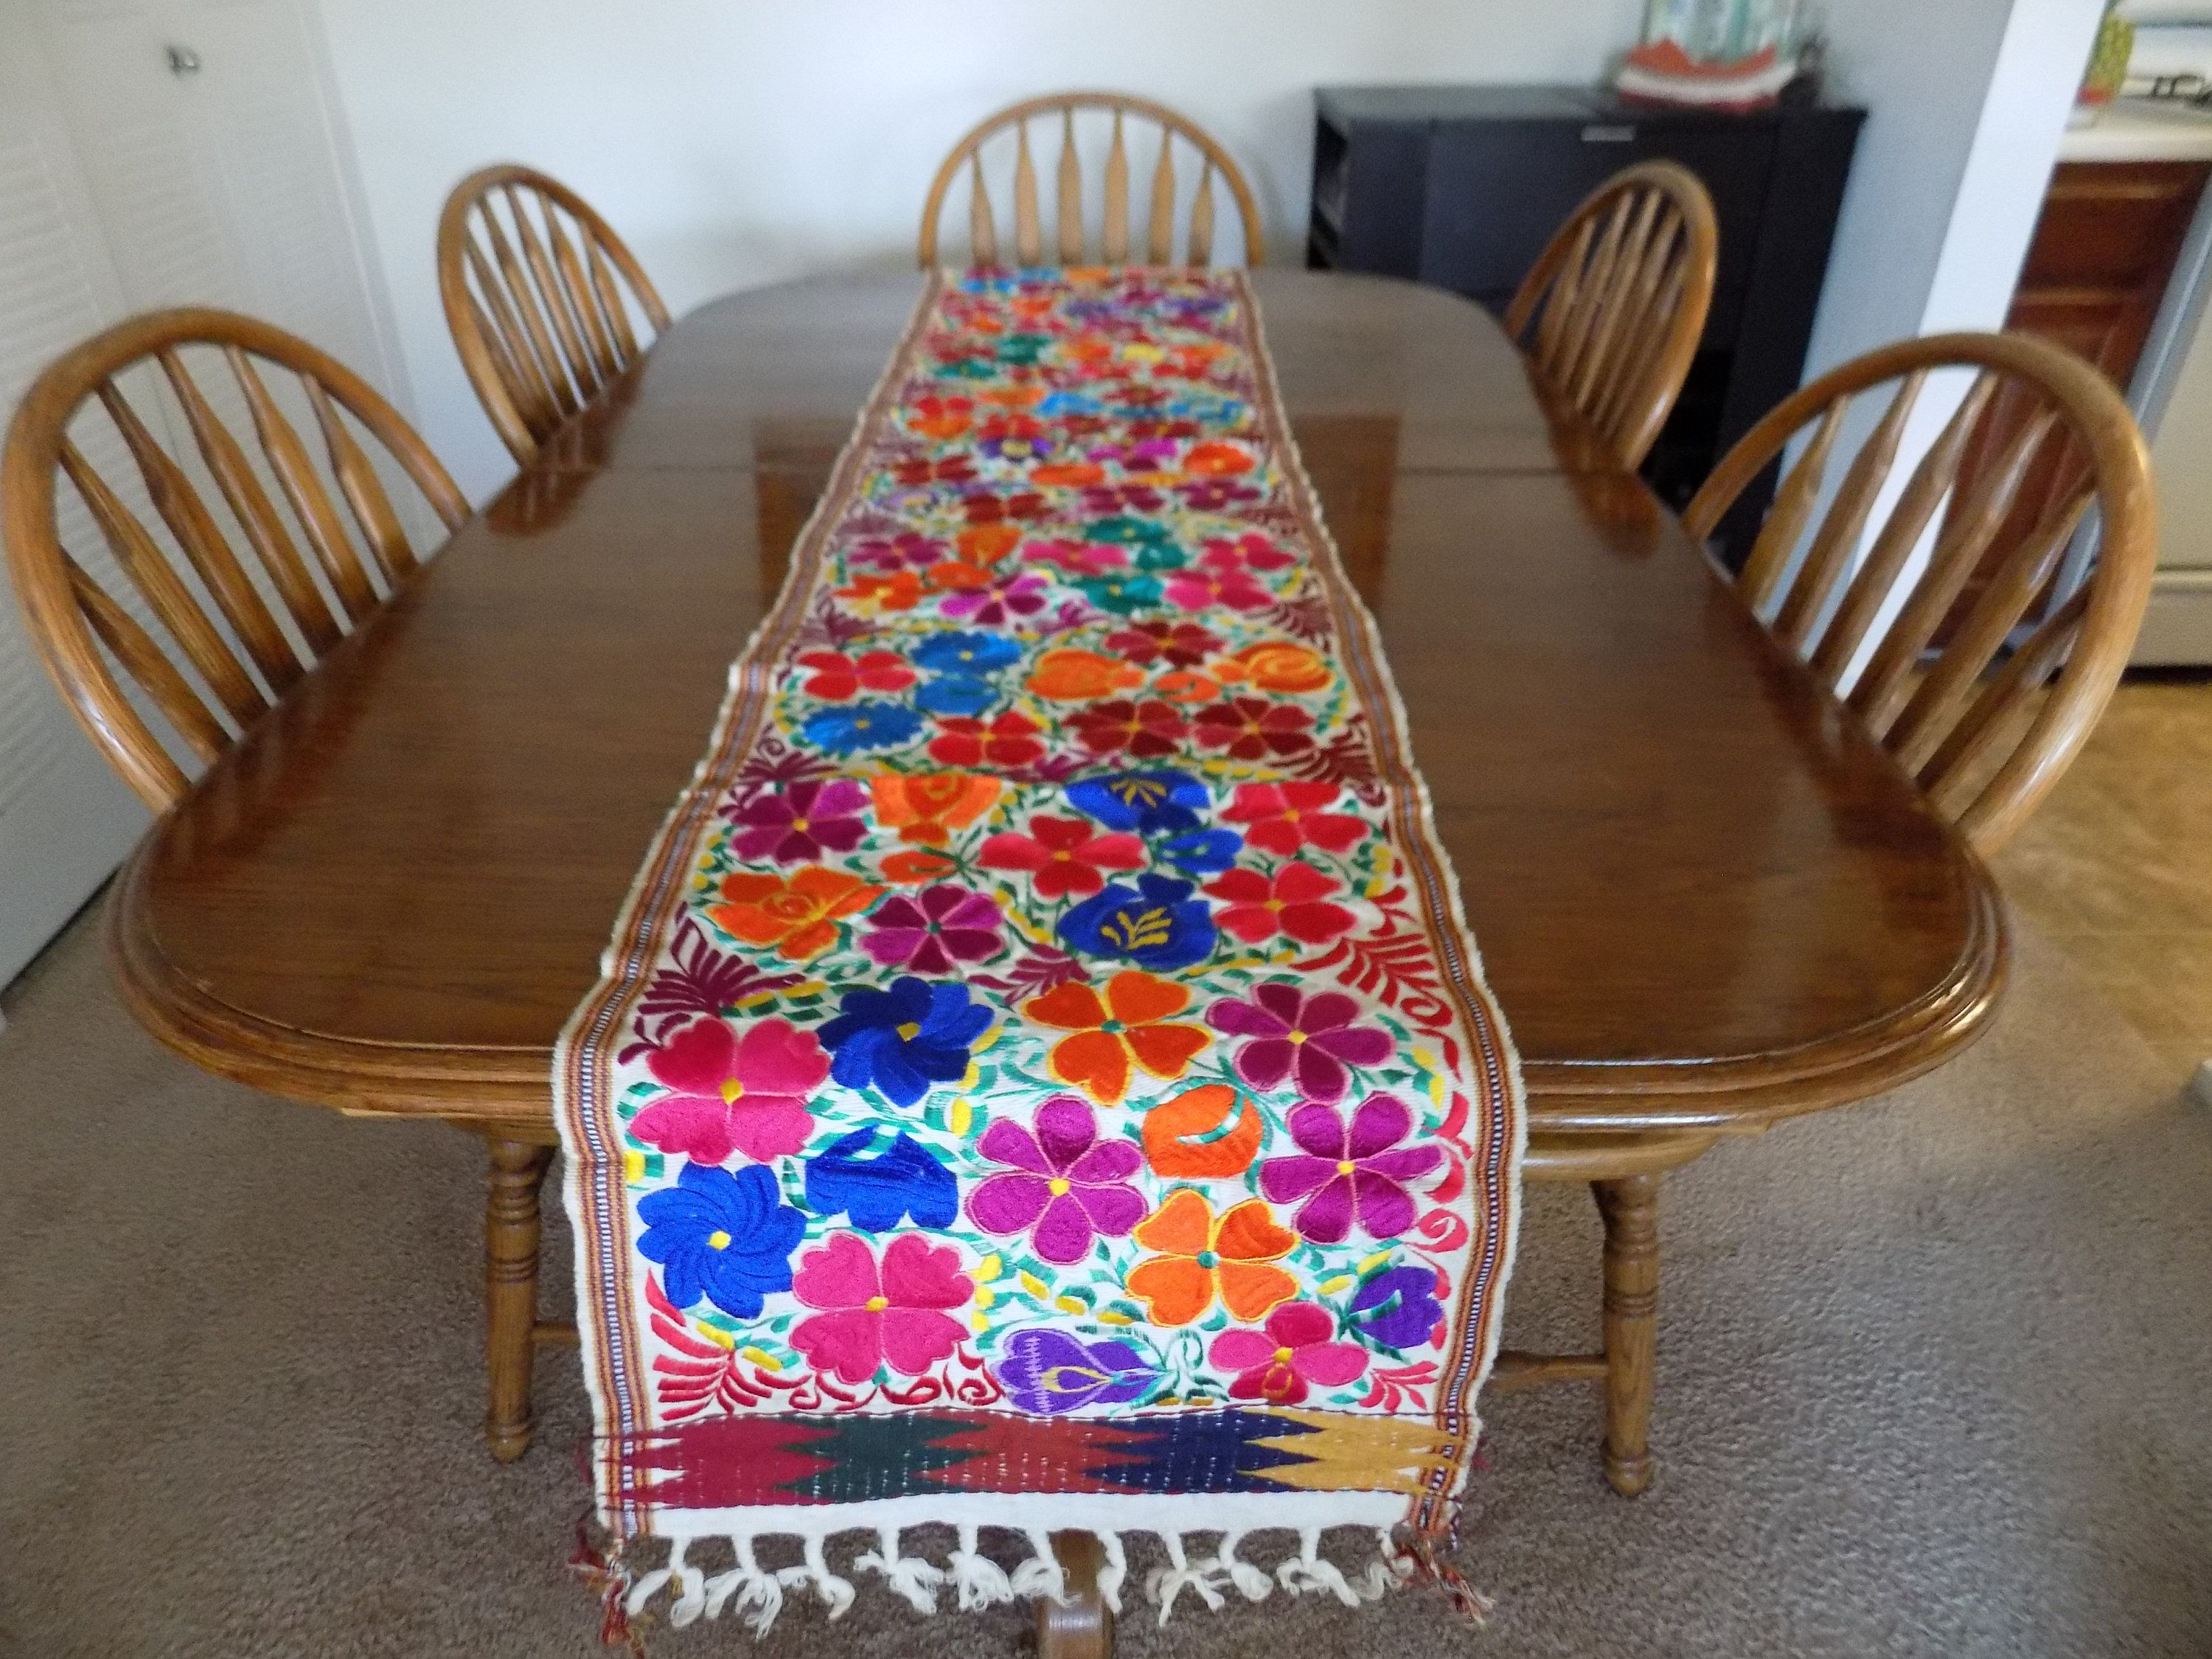 Hand Made Beaded Table Runner For Home Decor And Dinning Decor